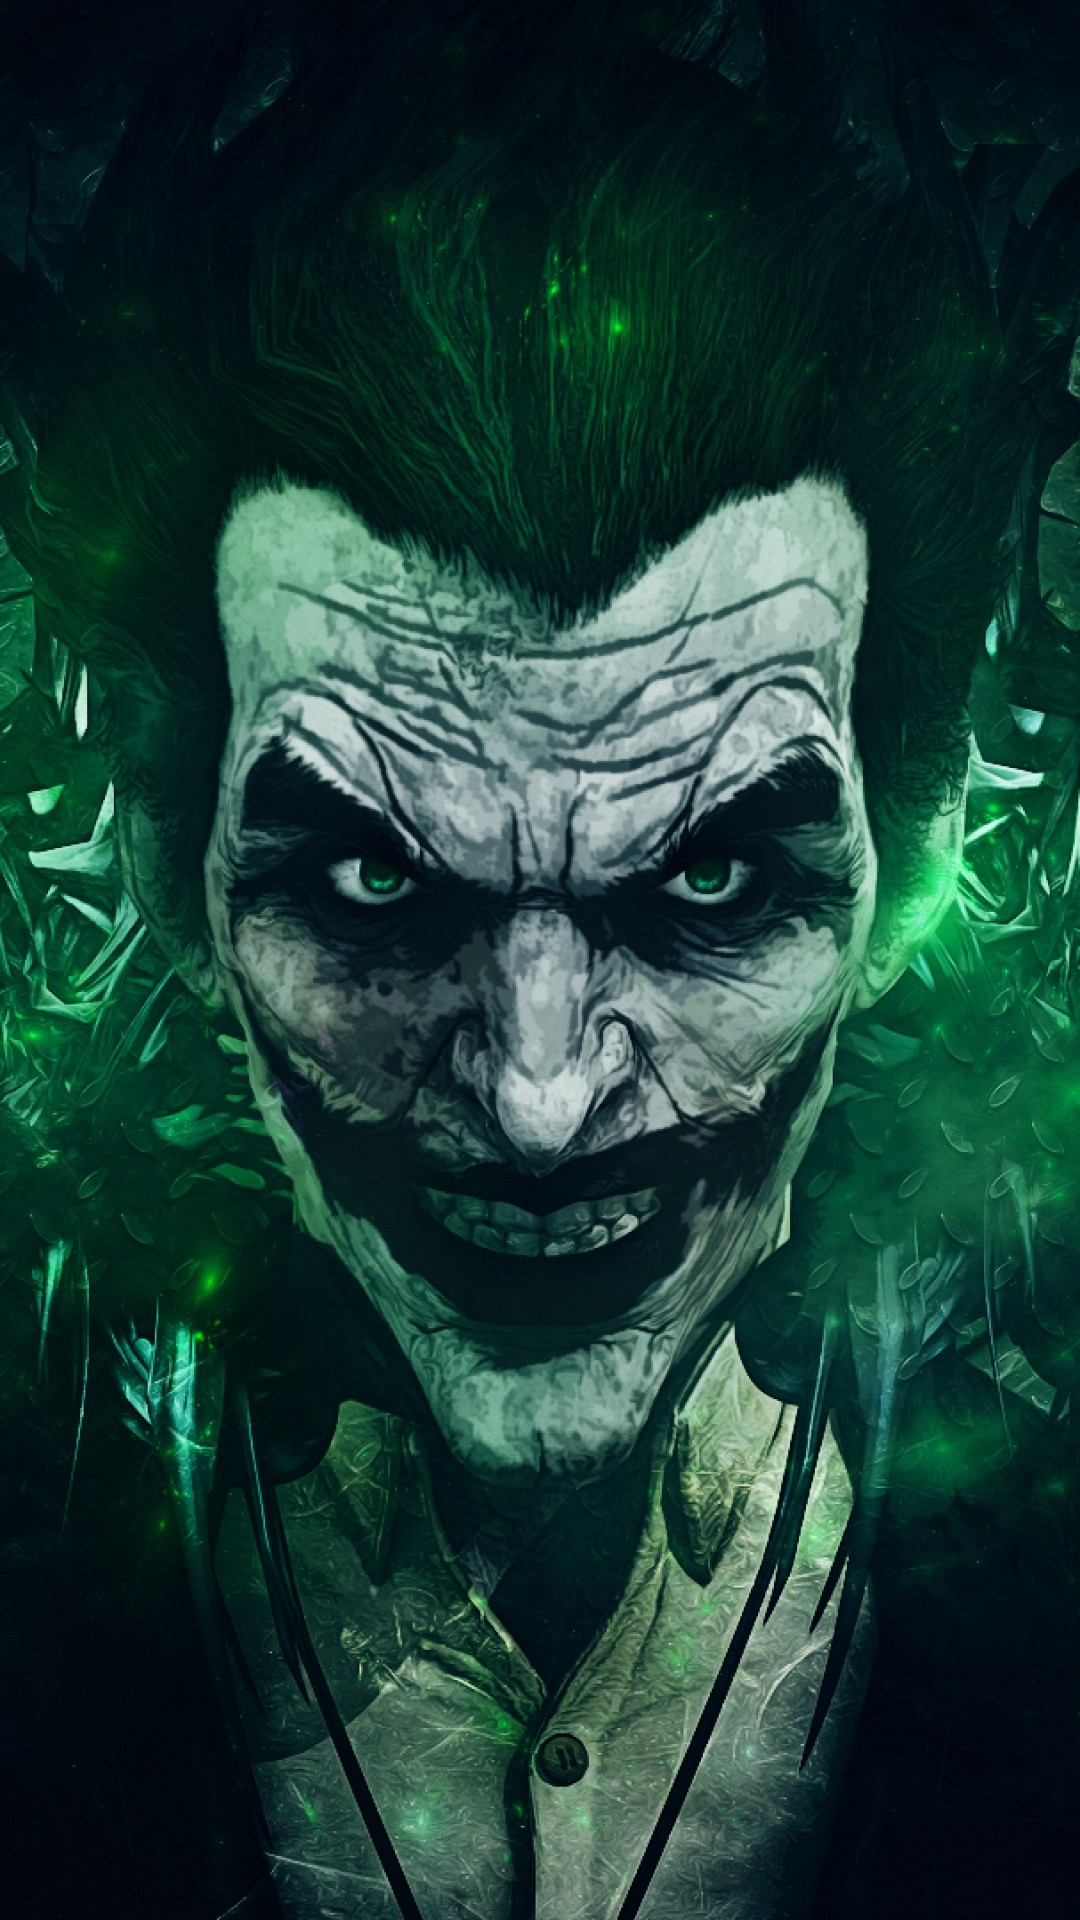 Joker Quotes Hd Wallpapers For Mobile Joker Quotes Wallpapers 71 Images